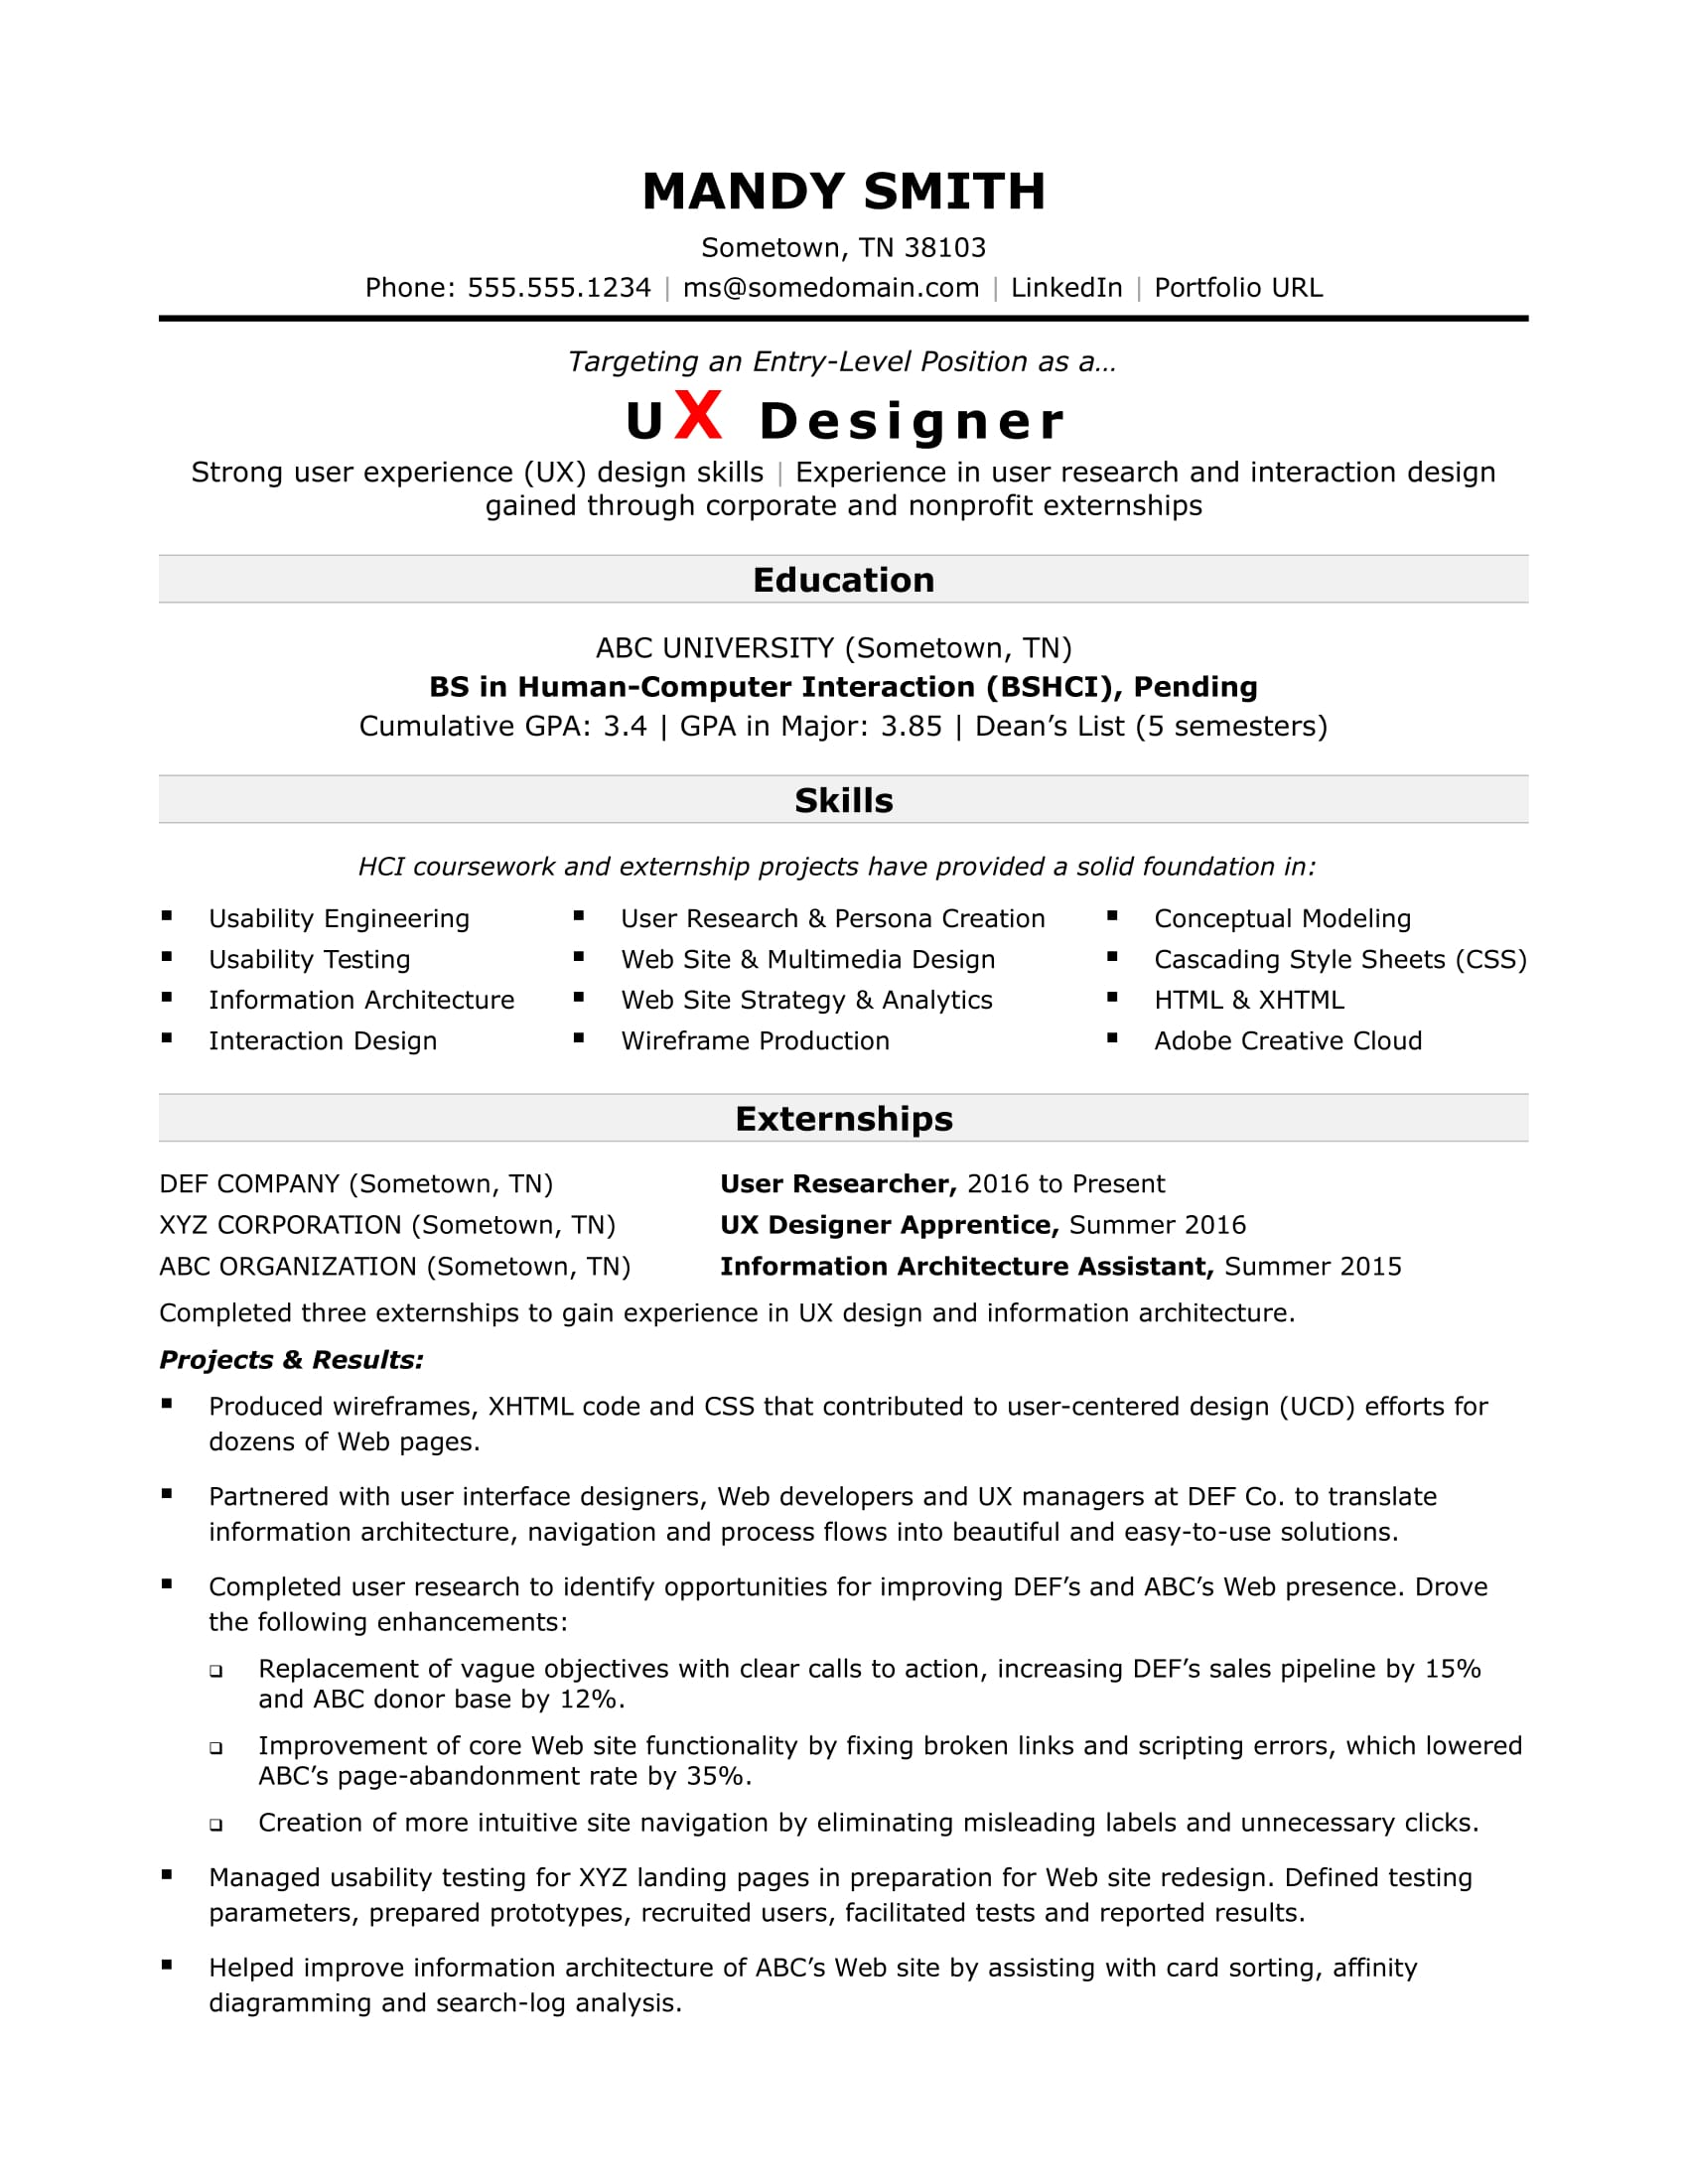 ux ui design designer resume samples